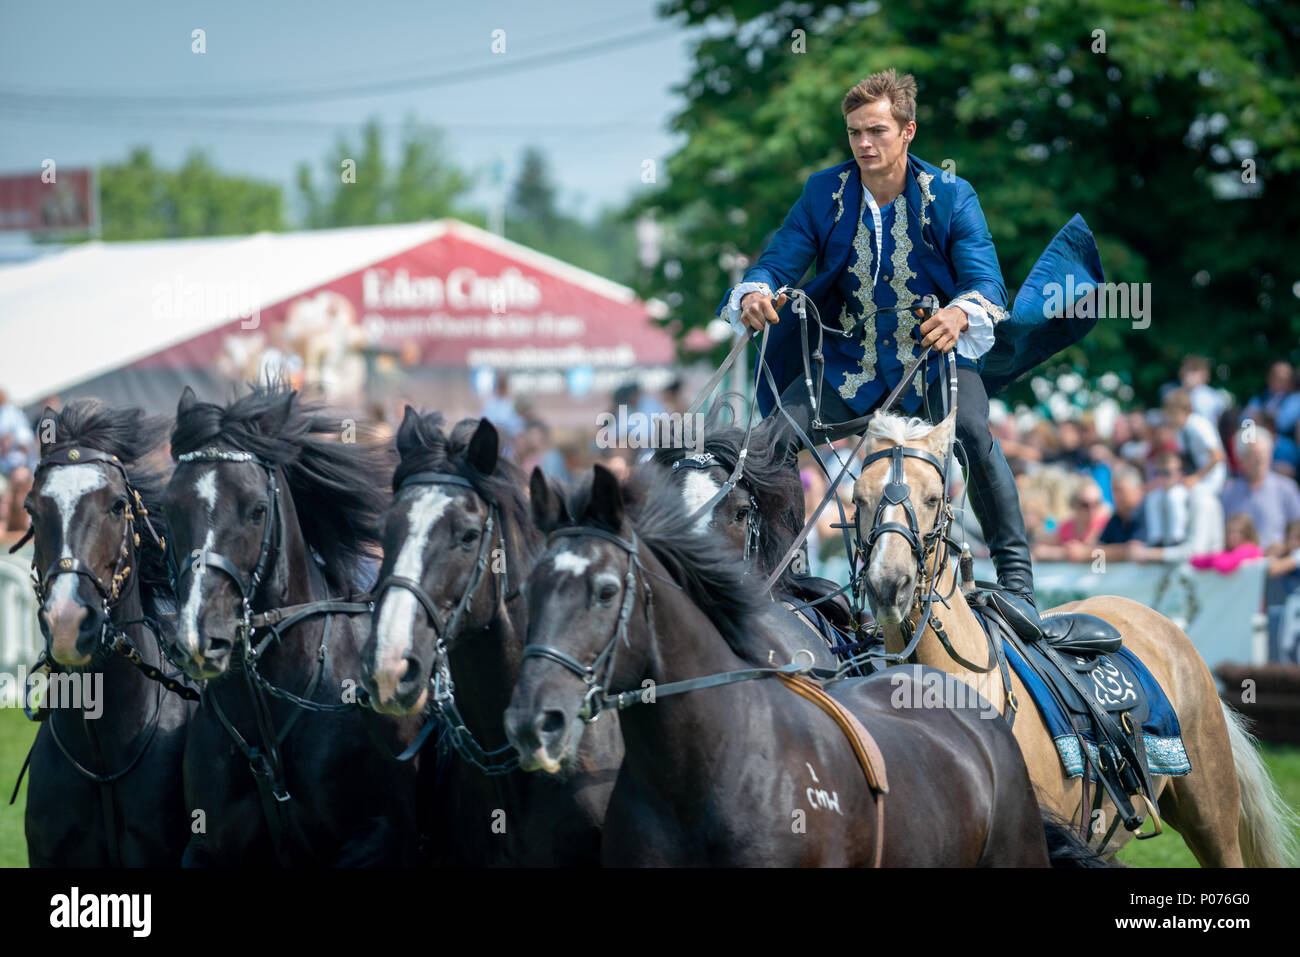 A rider from the Atkinson Action Horses stands on the back of two horses and controls four more horses while they gallop around the showground thrilling the crowd at the South Of England Show in Ardingly, Sussex, UK. - Stock Image